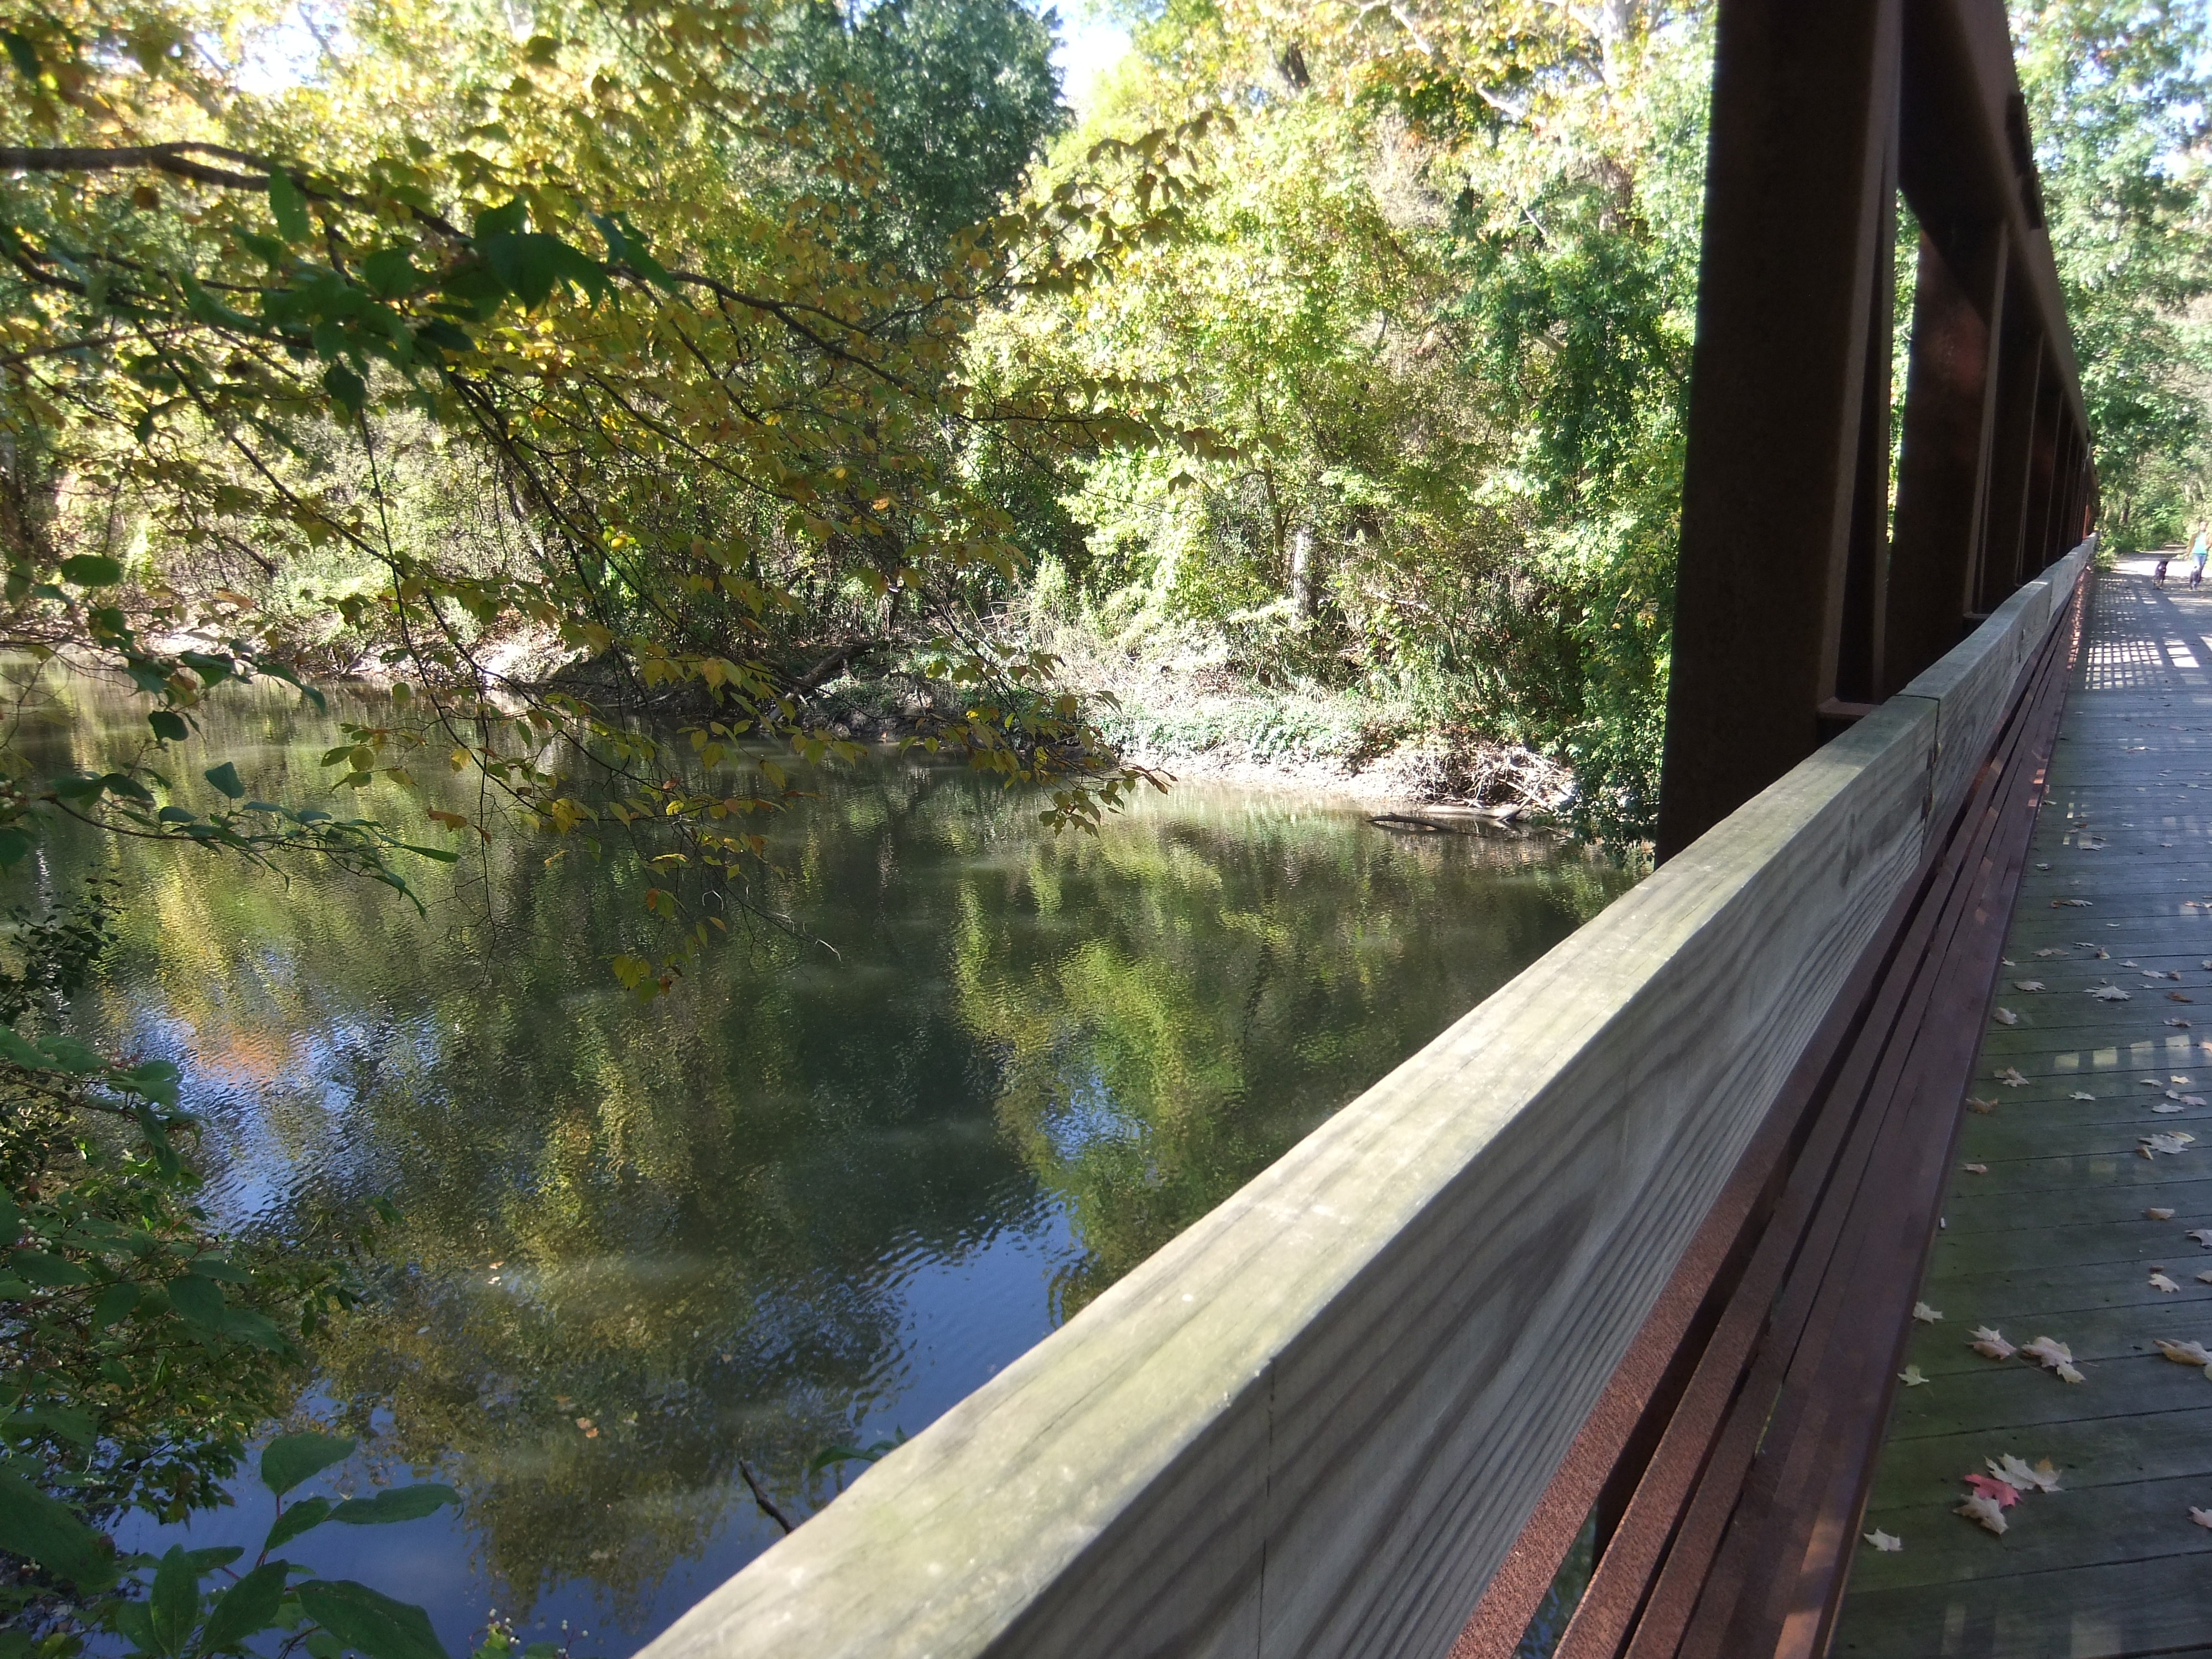 Photo of the rouge river from the bridge